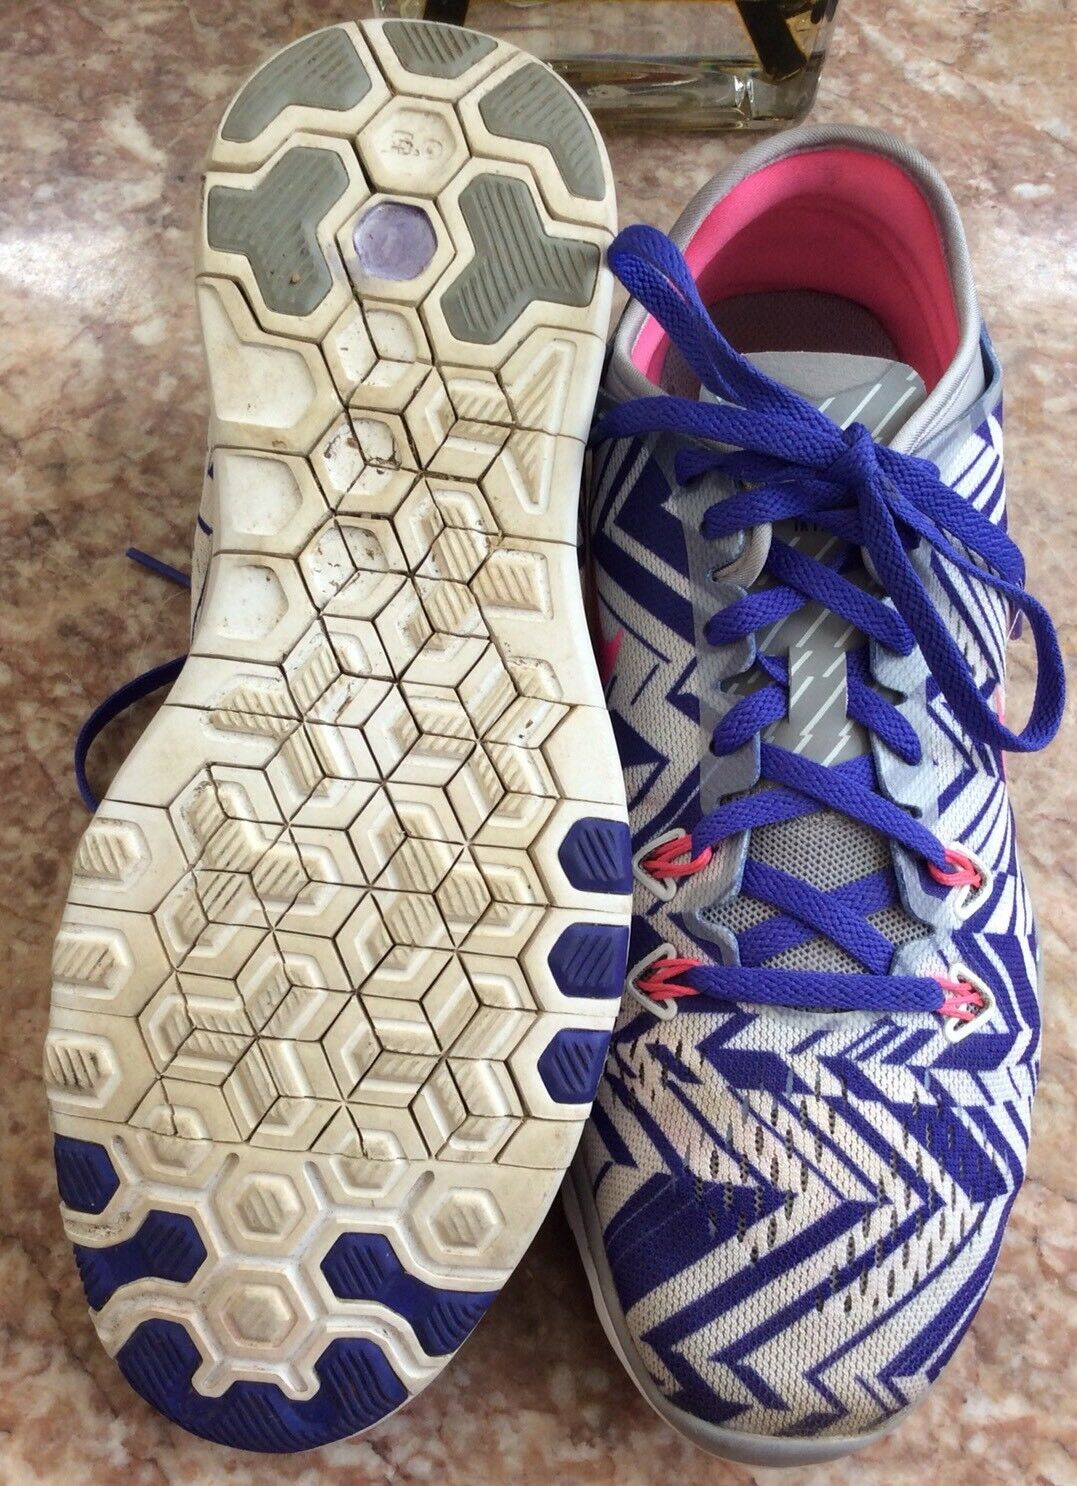 quality design 558a7 ddab7 ... Nike Free 5.0 TR FIT 5 PRT Women s Women s Women s Gray Purple Running  Shoes Size 8